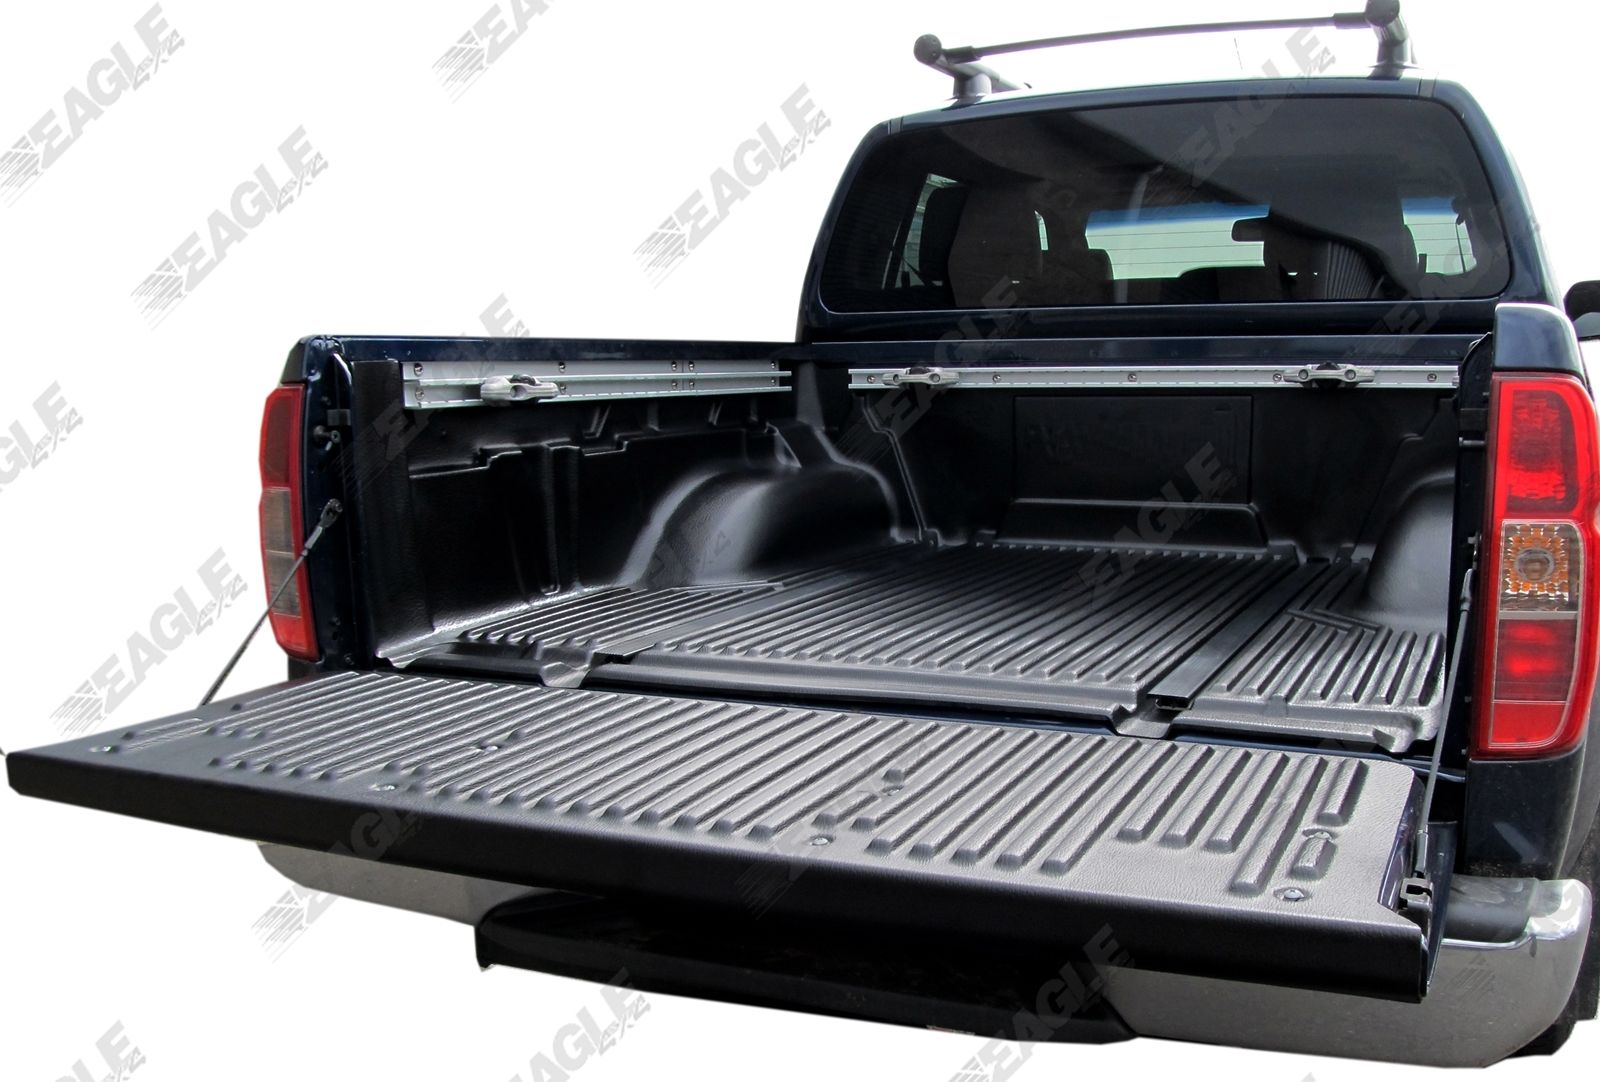 Nissan navara d40 load bed liner under rail plastic life time nissan navara d40 load bed liner under rail plastic life time guarantee vanachro Image collections